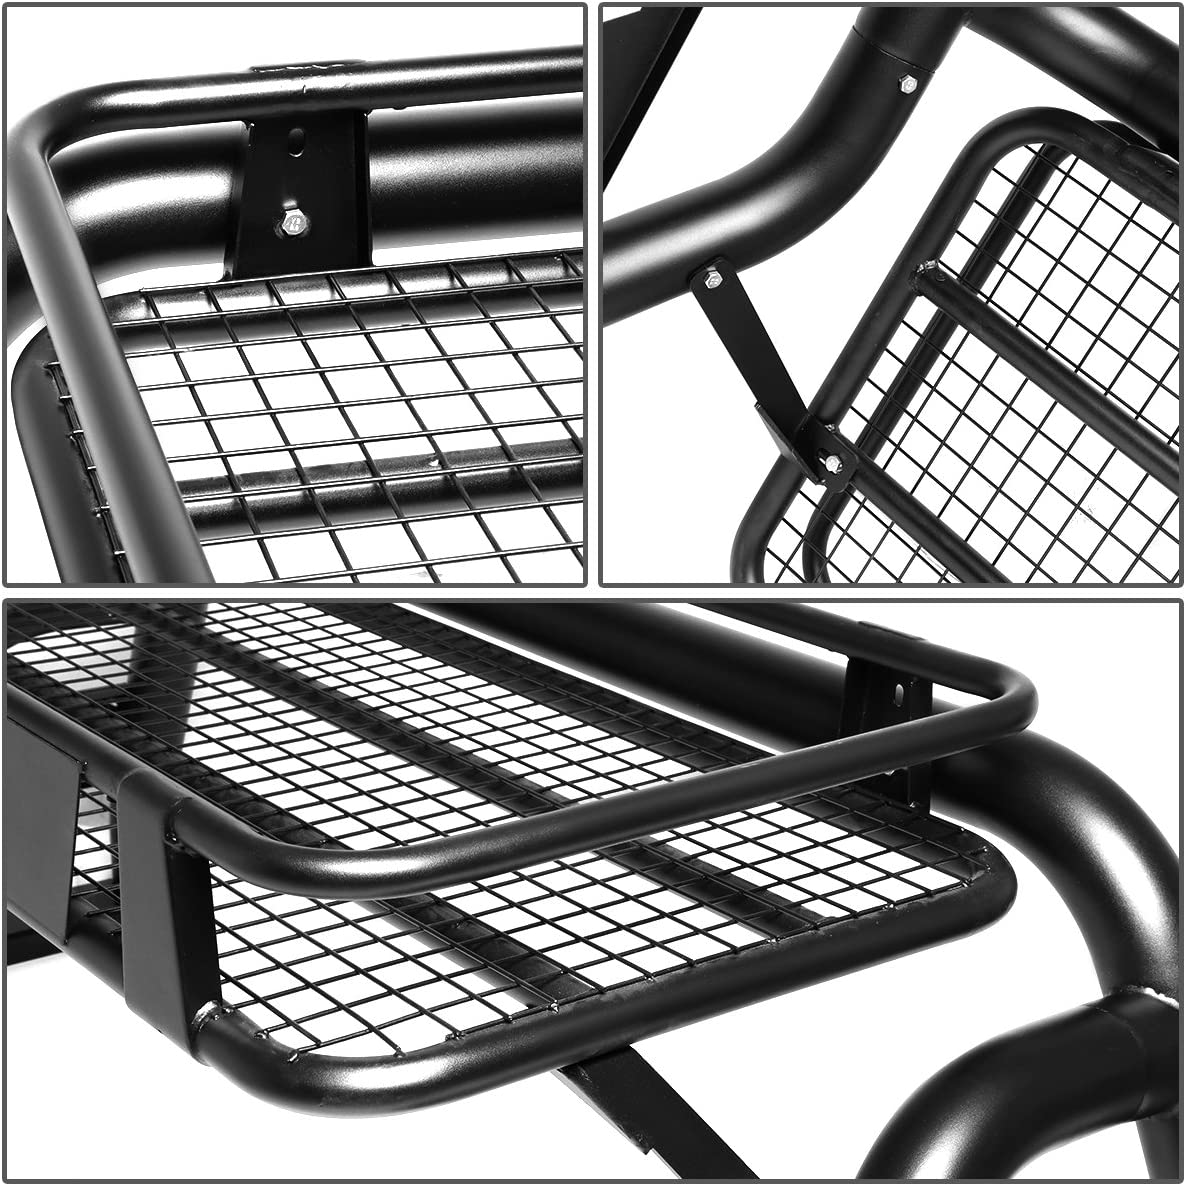 Roof Cargo Rack Assembly DNA Motoring TCRB-001-T2 Aluminum Truck Bed Roll Bar